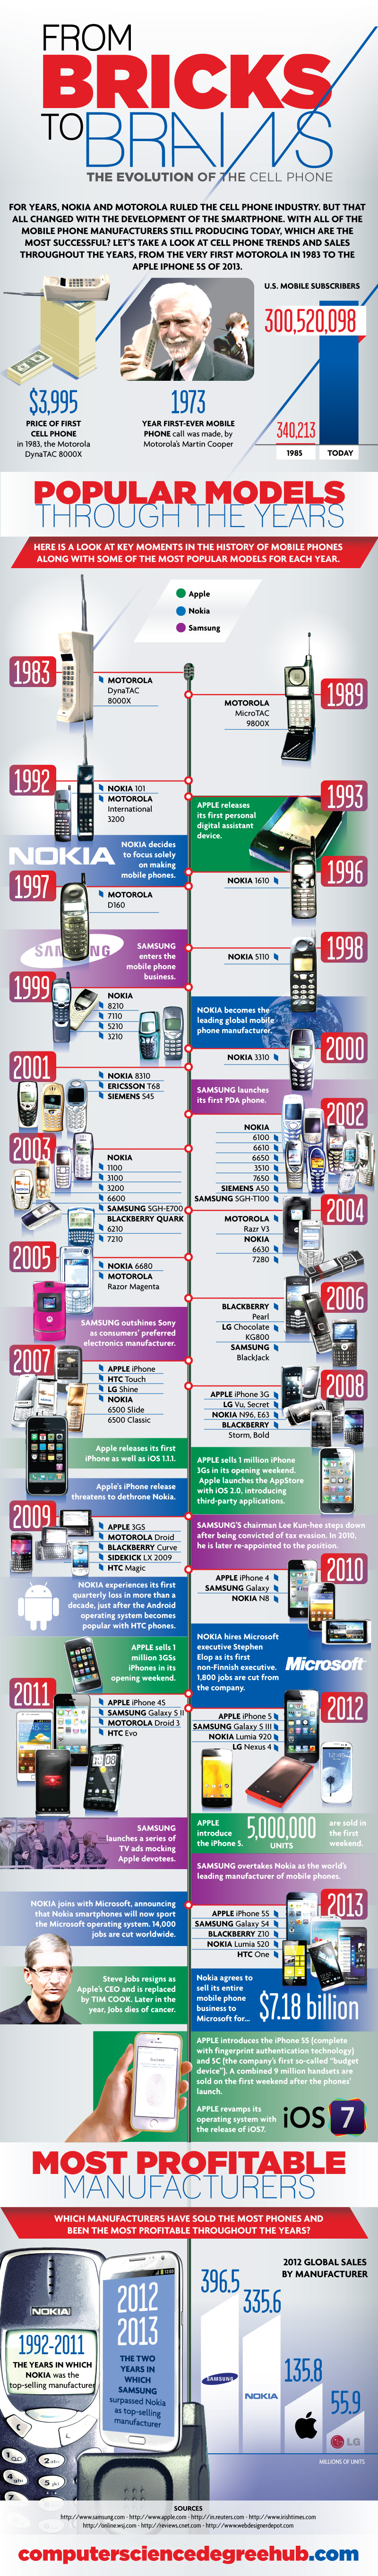 From Bricks to Brains: The Evolution of the Cell Phone